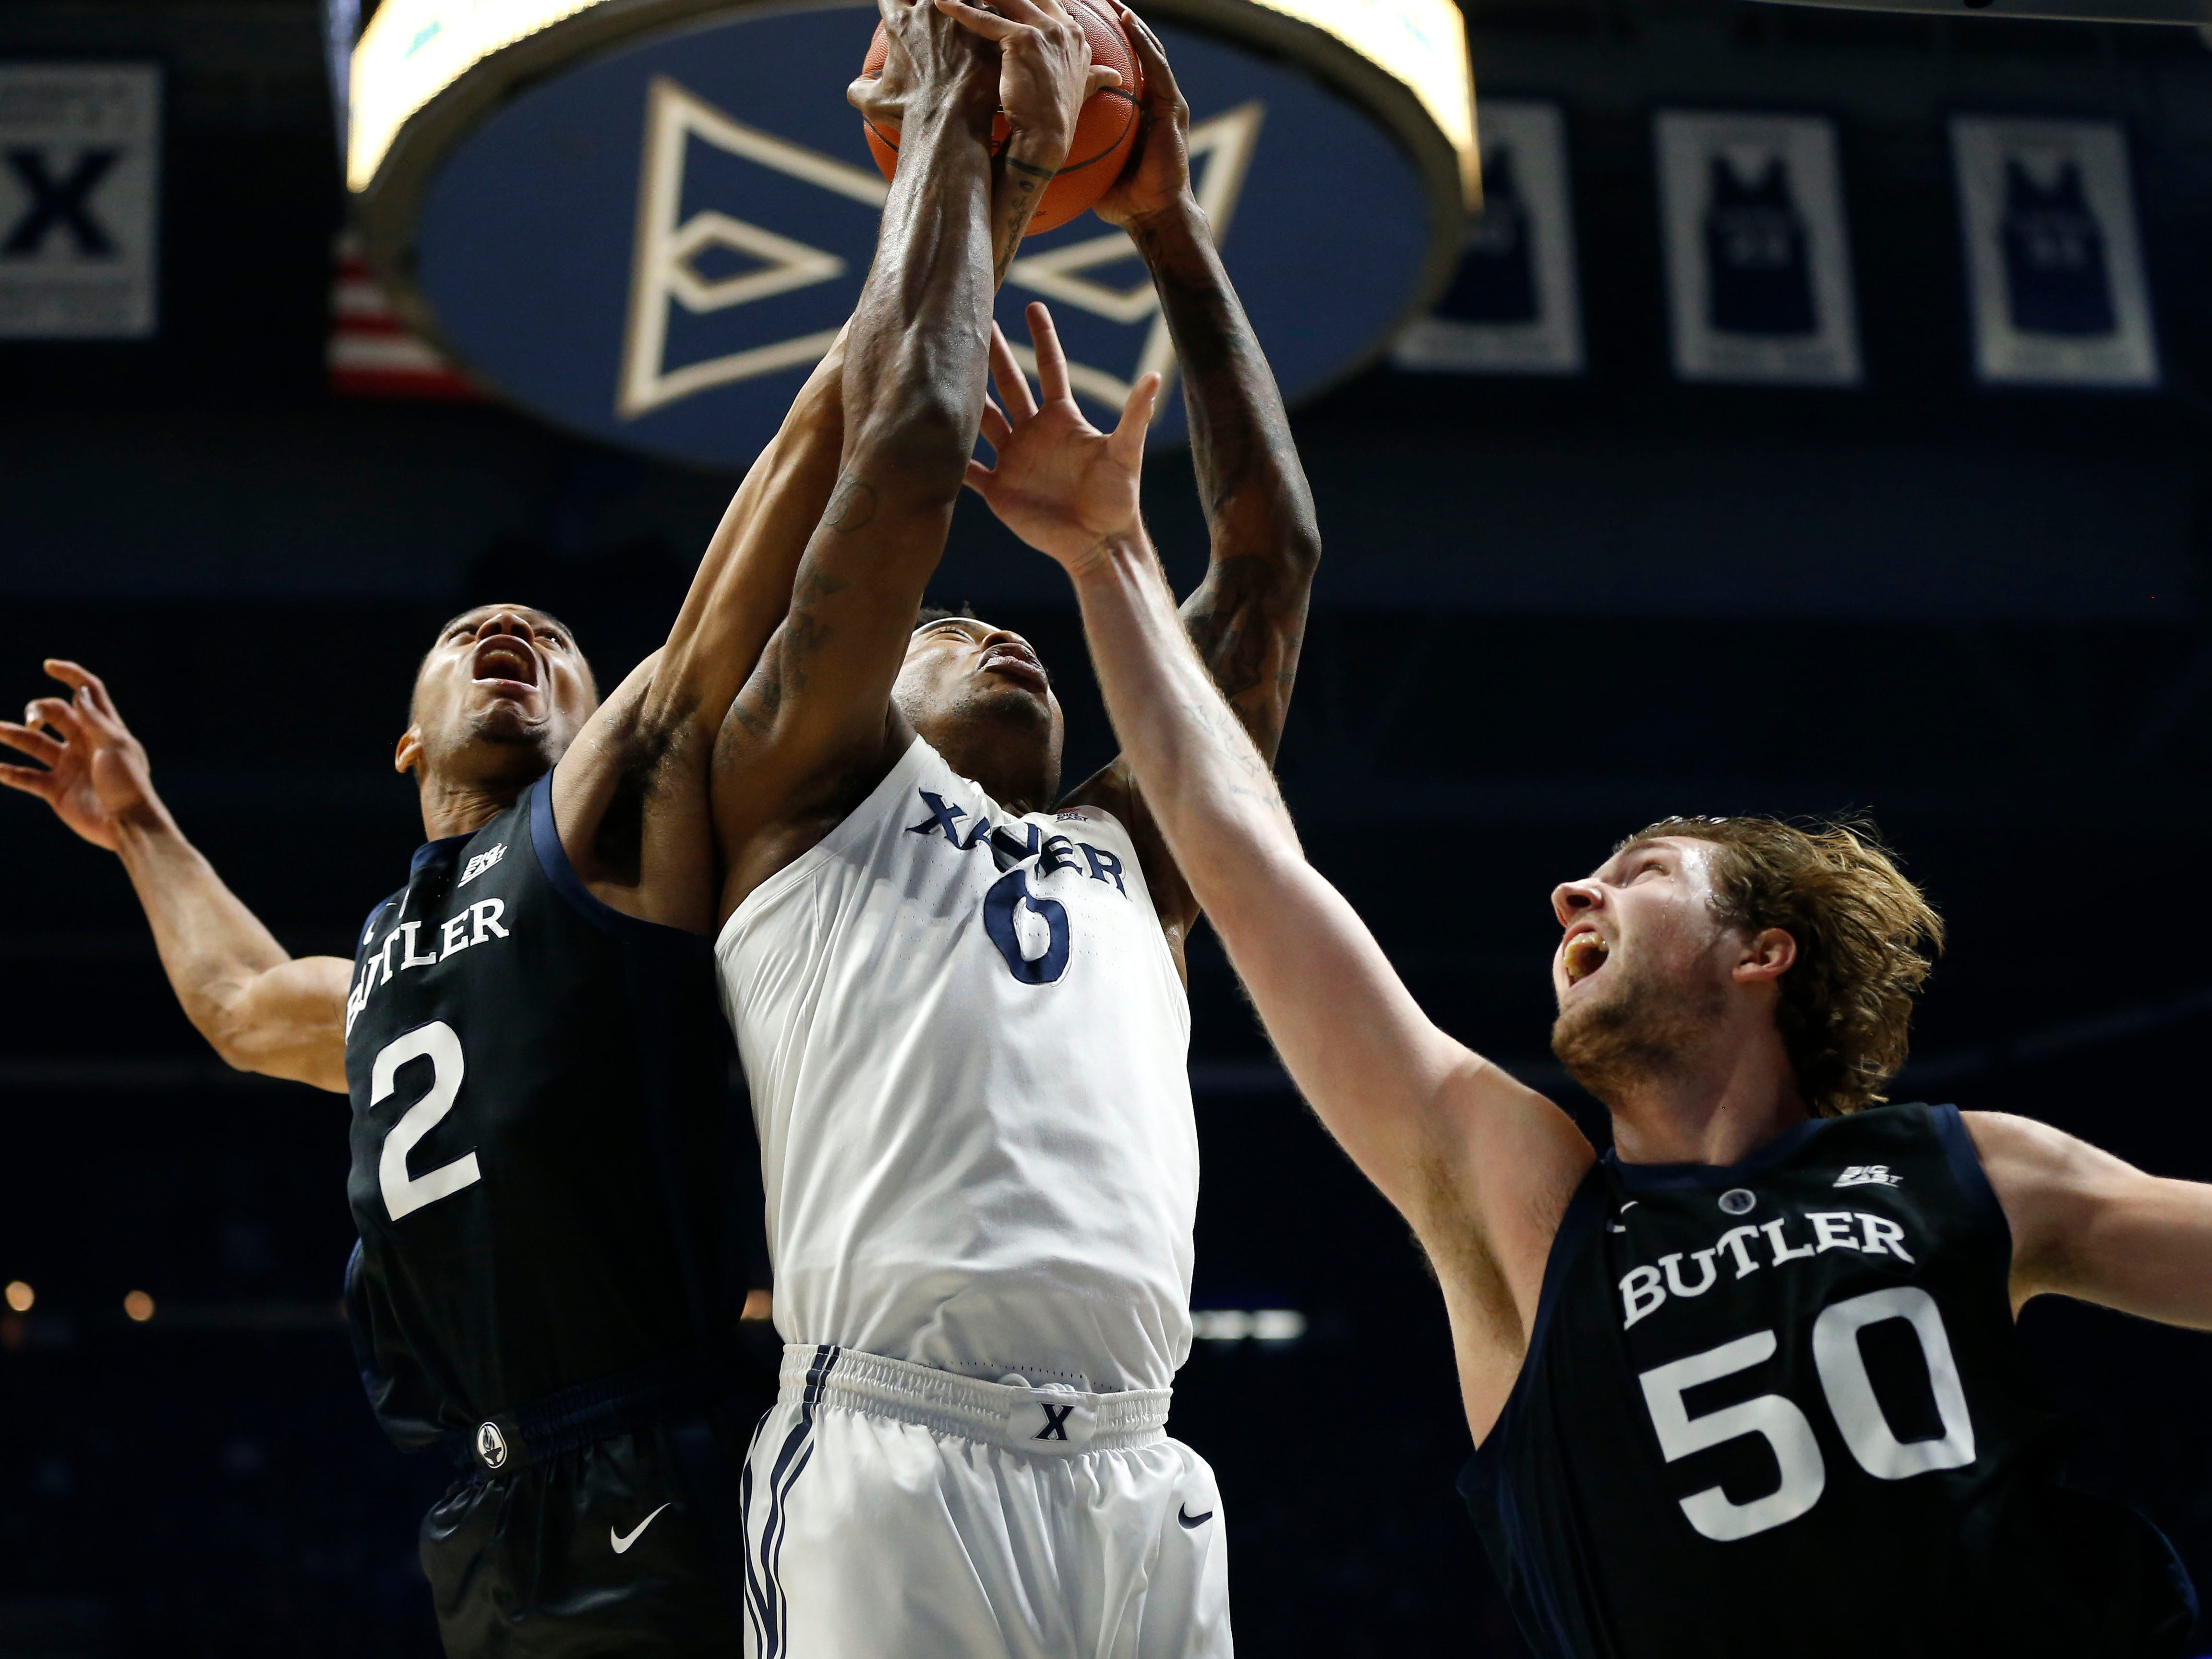 Jan 13, 2019; Cincinnati, OH, USA; Xavier Musketeers forward Tyrique Jones (0) goes for the ball during the first half against the Butler Bulldogs guard Aaron Thompson (2) and forward Joey Brunk (50) at the Cintas Center.